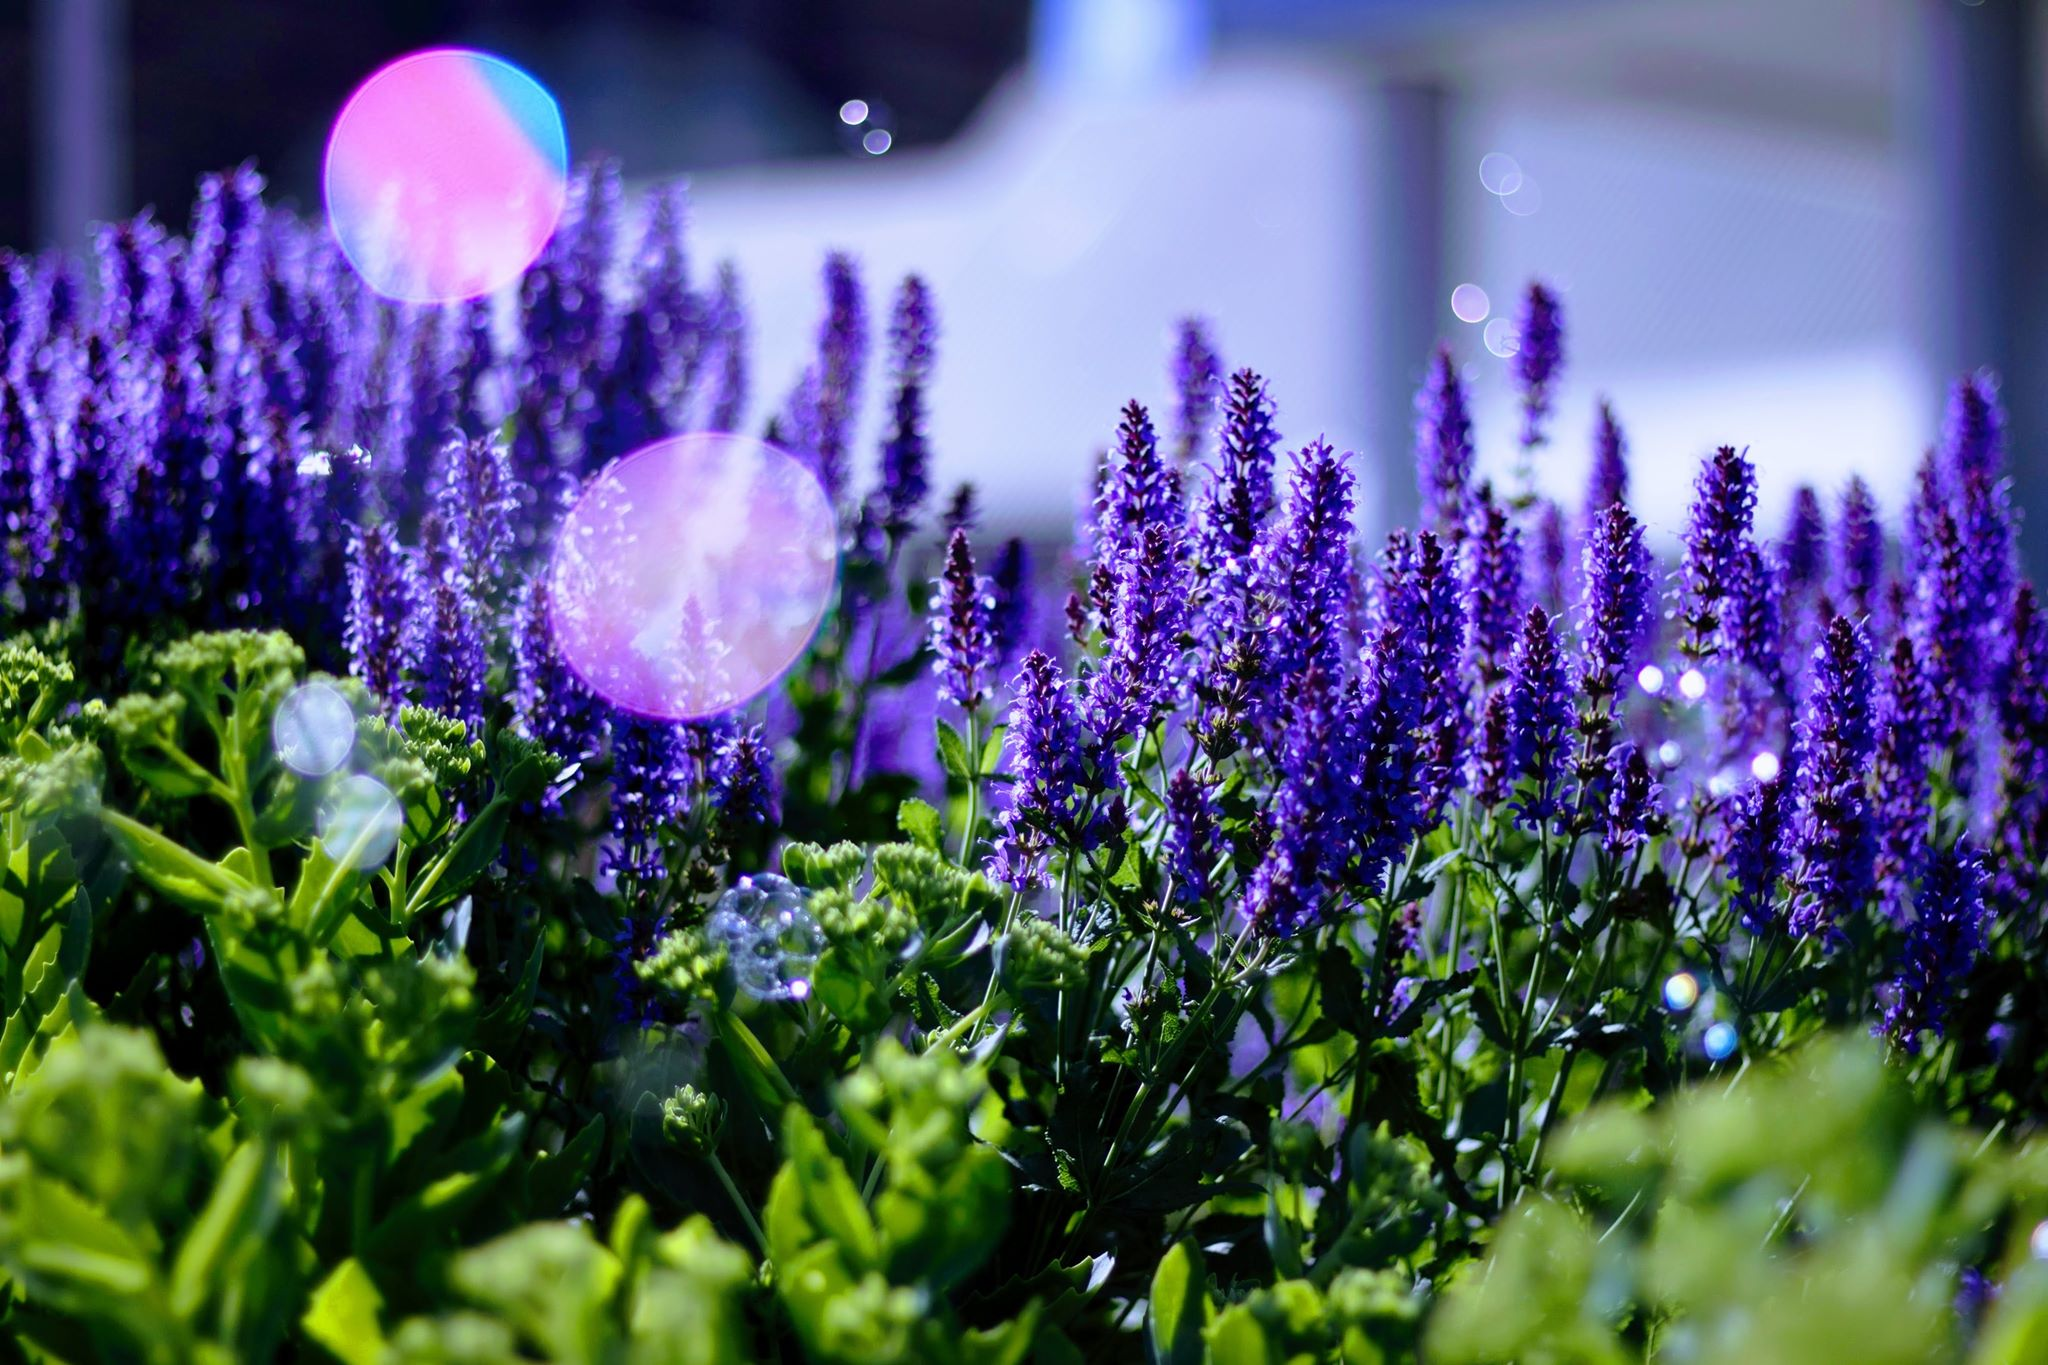 Lavender blooming near the CN Tower, Toronto